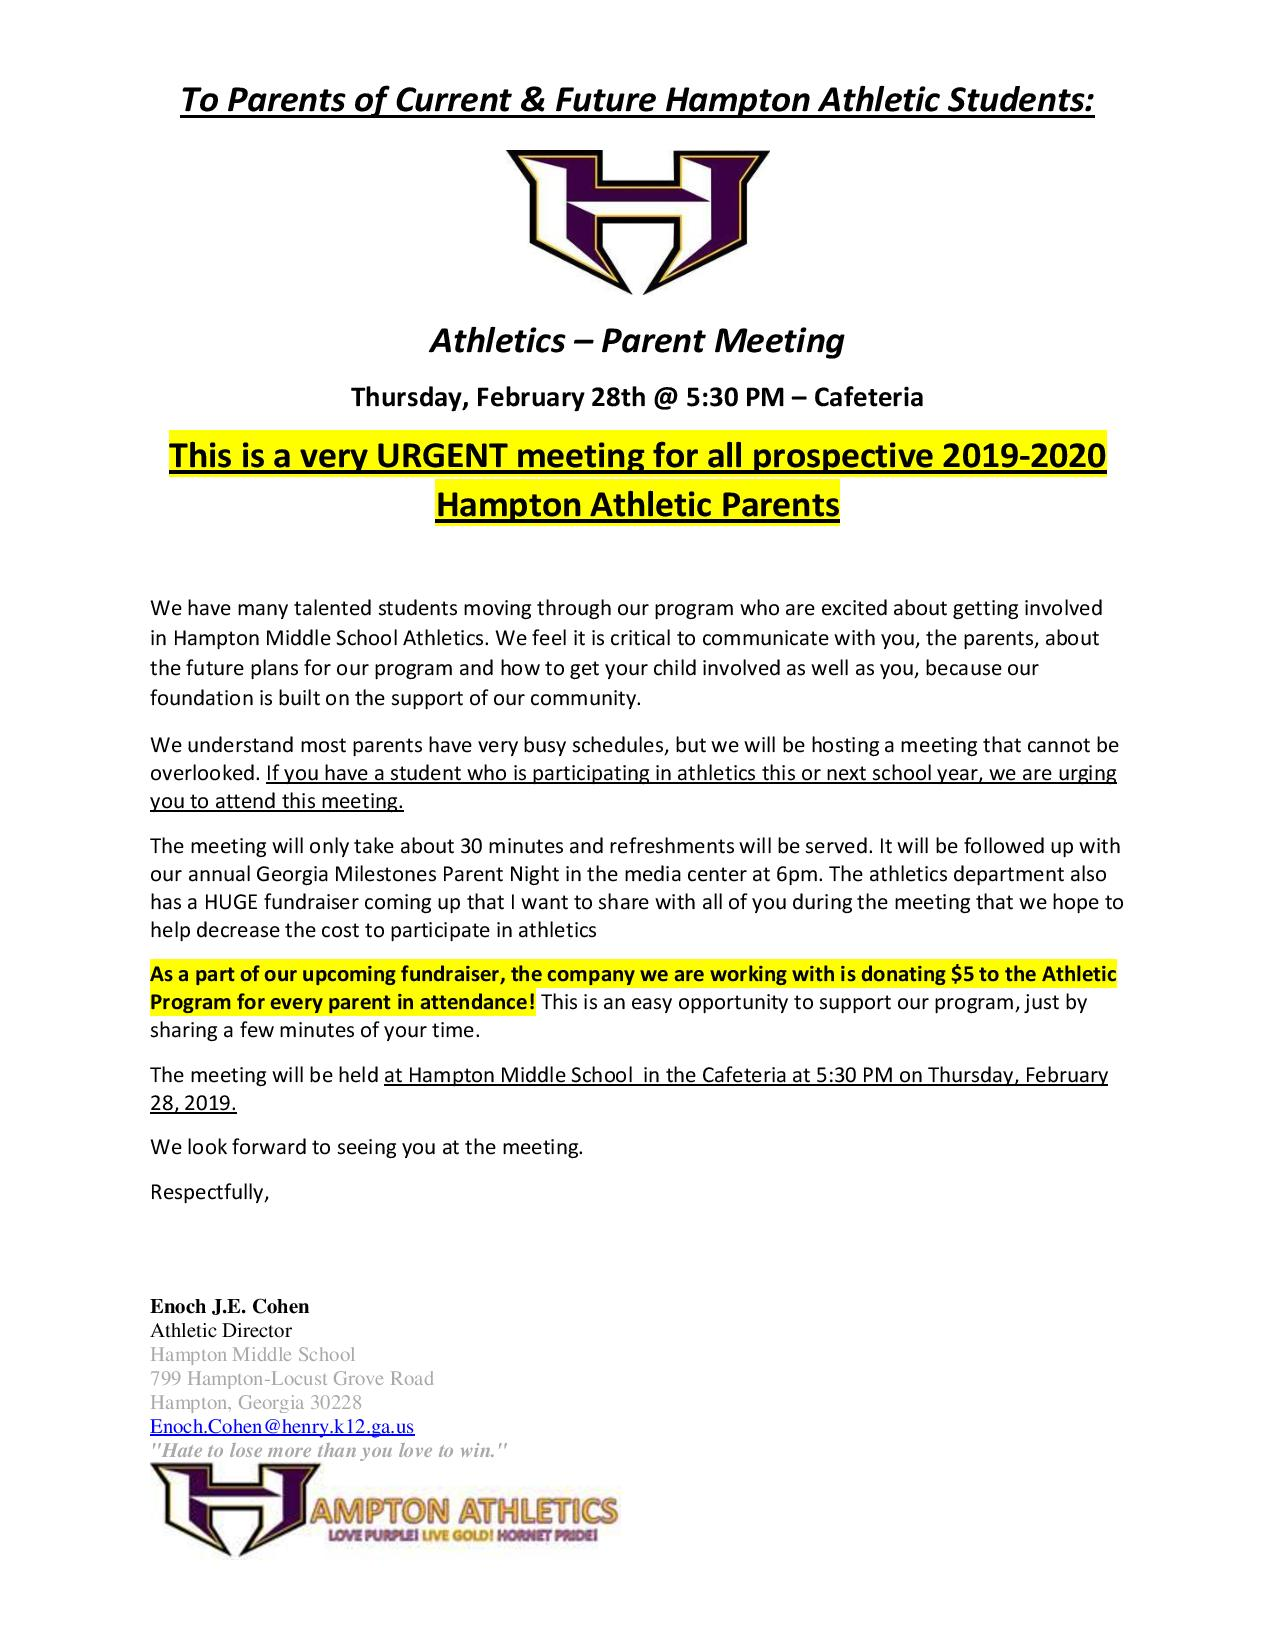 URGENT meeting for all prospective 2019-2020 Hampton Middle Athletic Parents